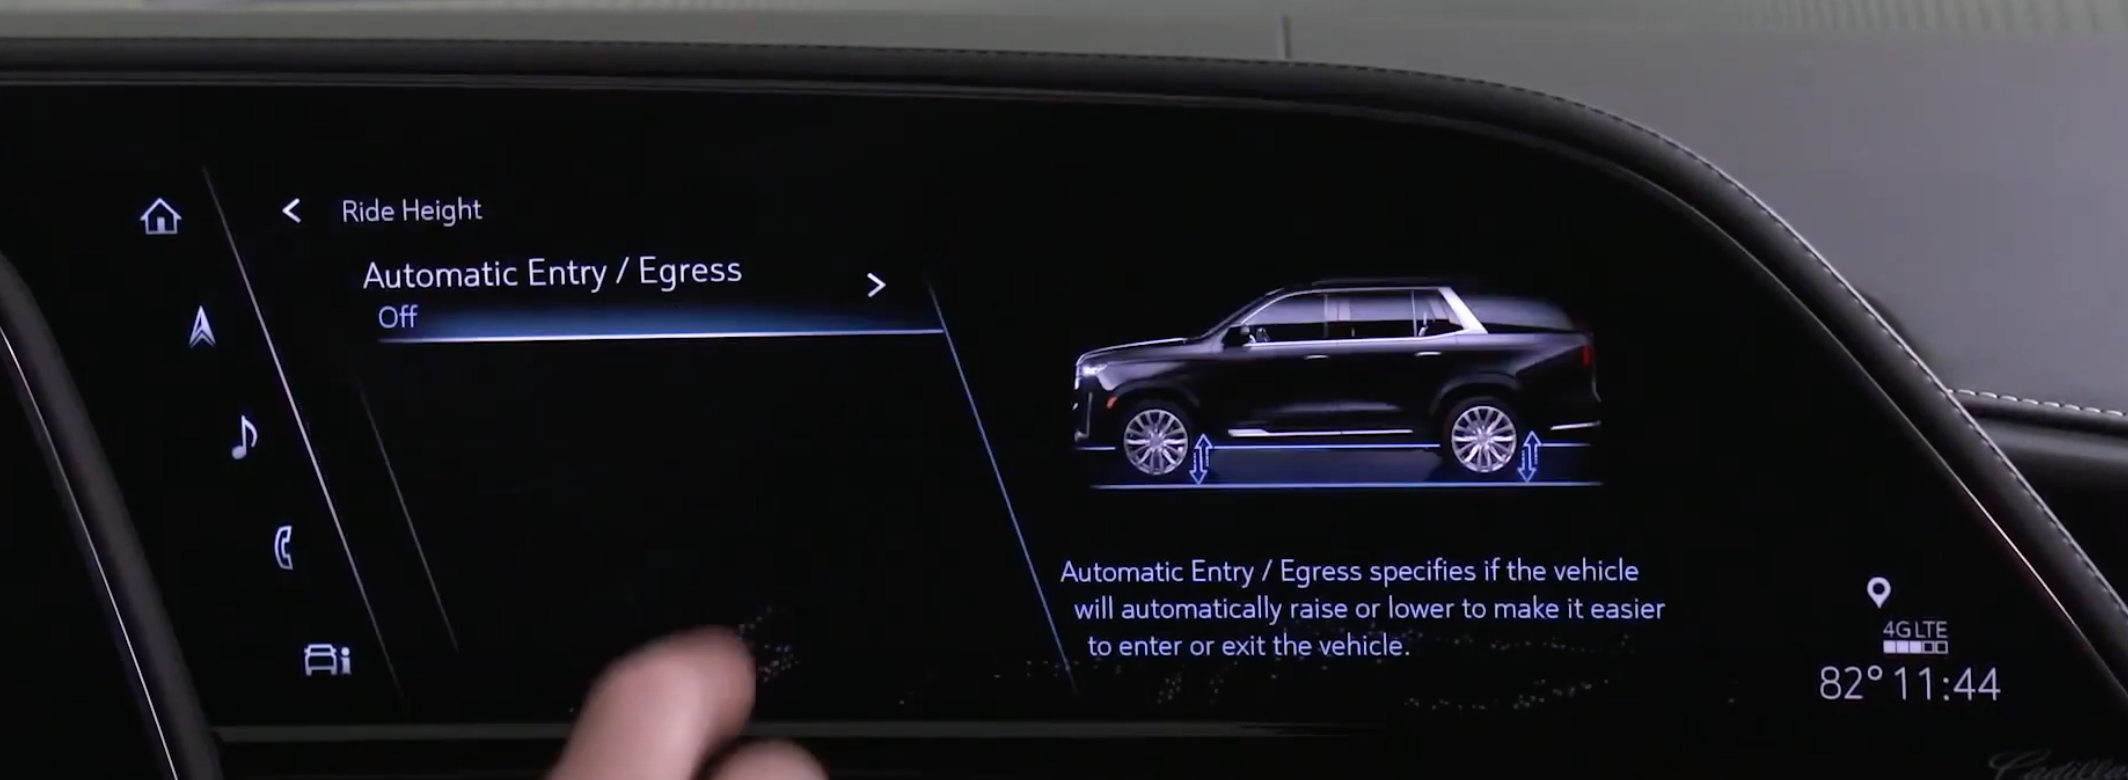 Turning on and off automatic entry and an illustration of a car